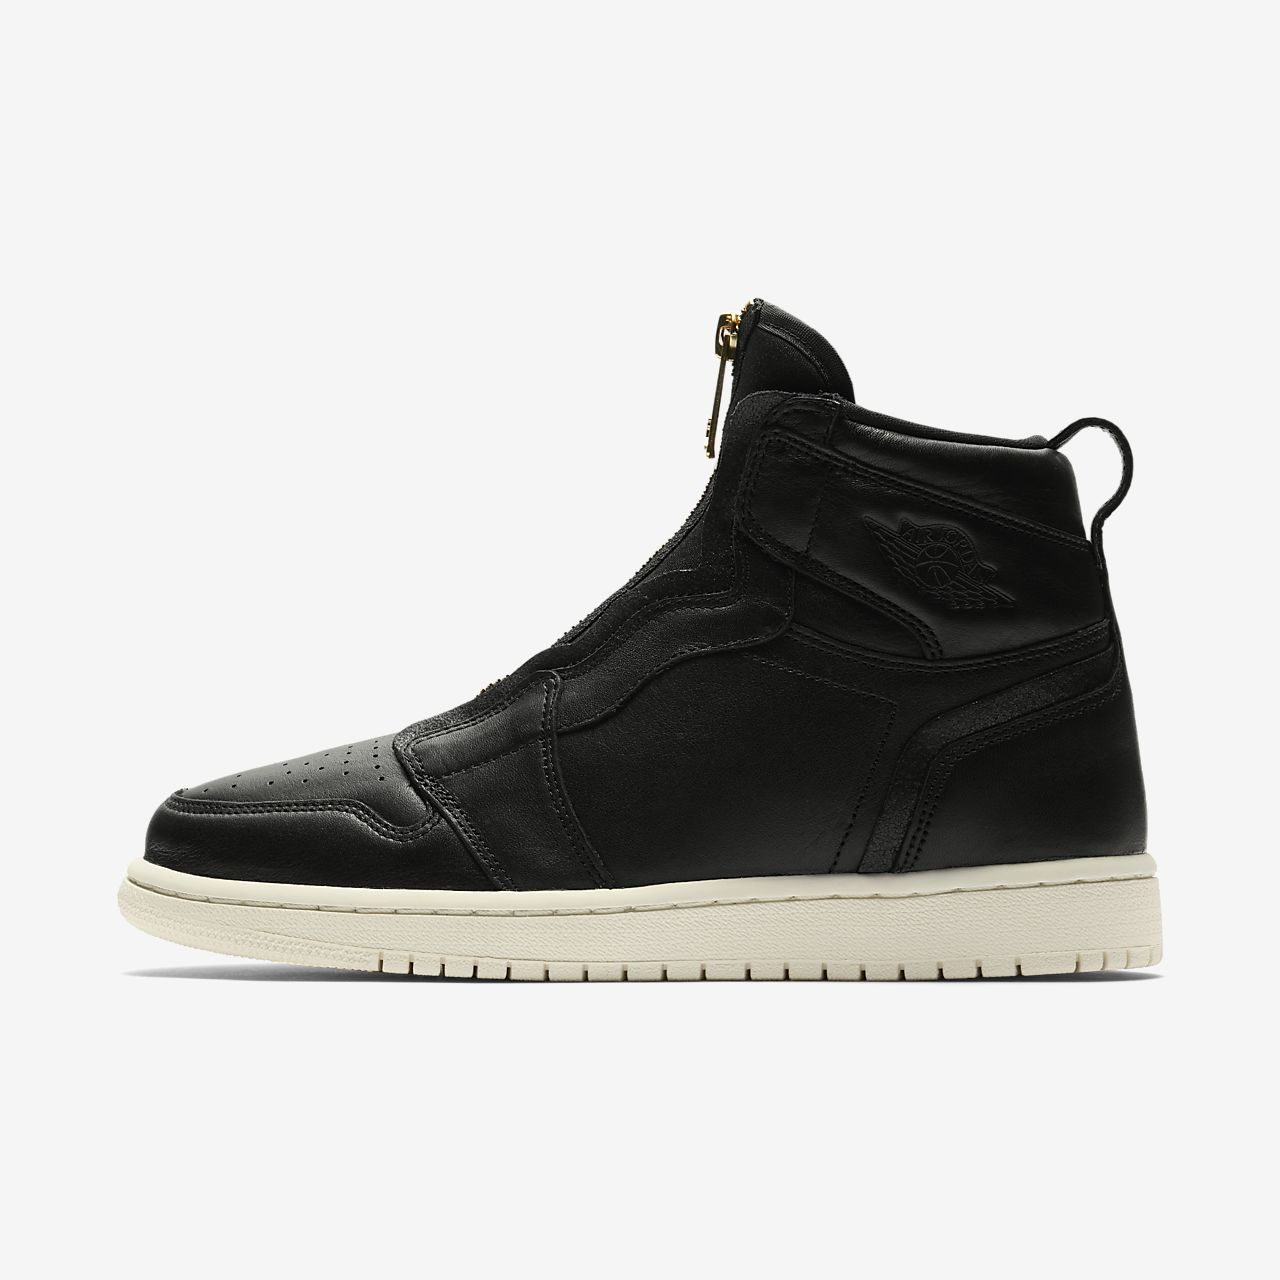 41c47cfb731956 Air Jordan 1 High Zip Women s Shoe. Nike.com CA